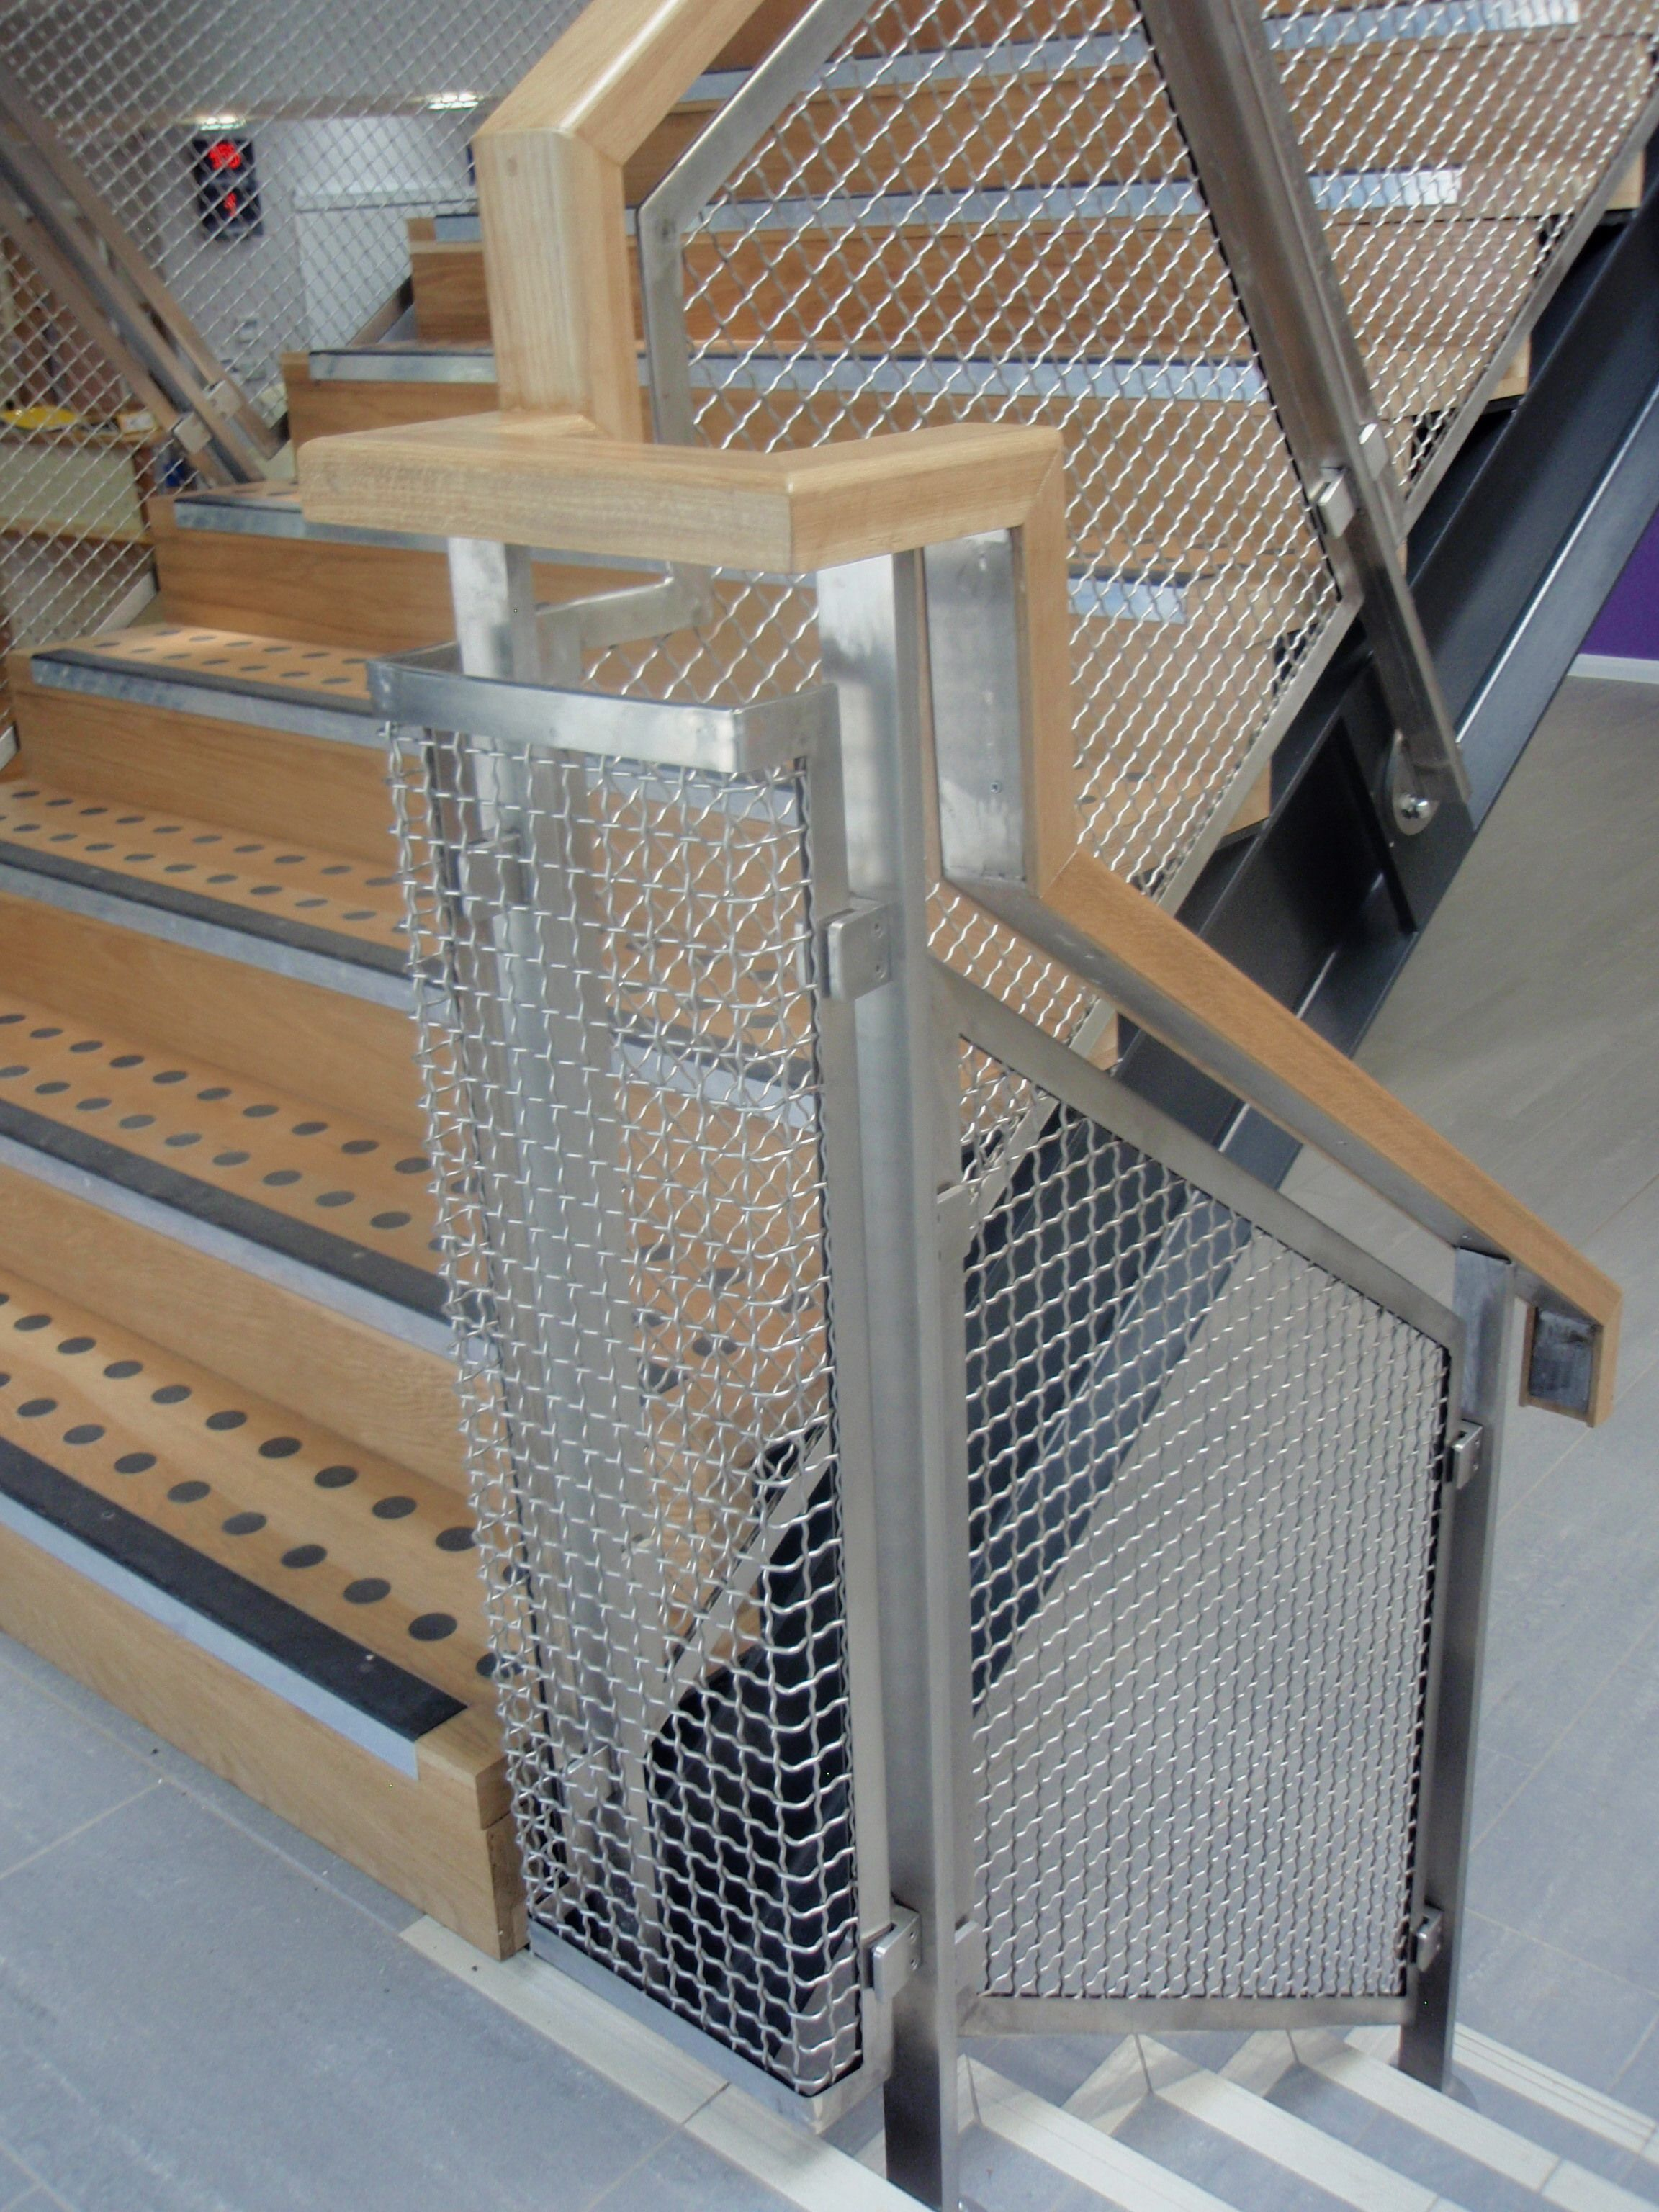 Aston Joint Services Internal Metal Mesh balustrade infill panel Product Concord S428 architecture interiordesign stairs staircase balustrade